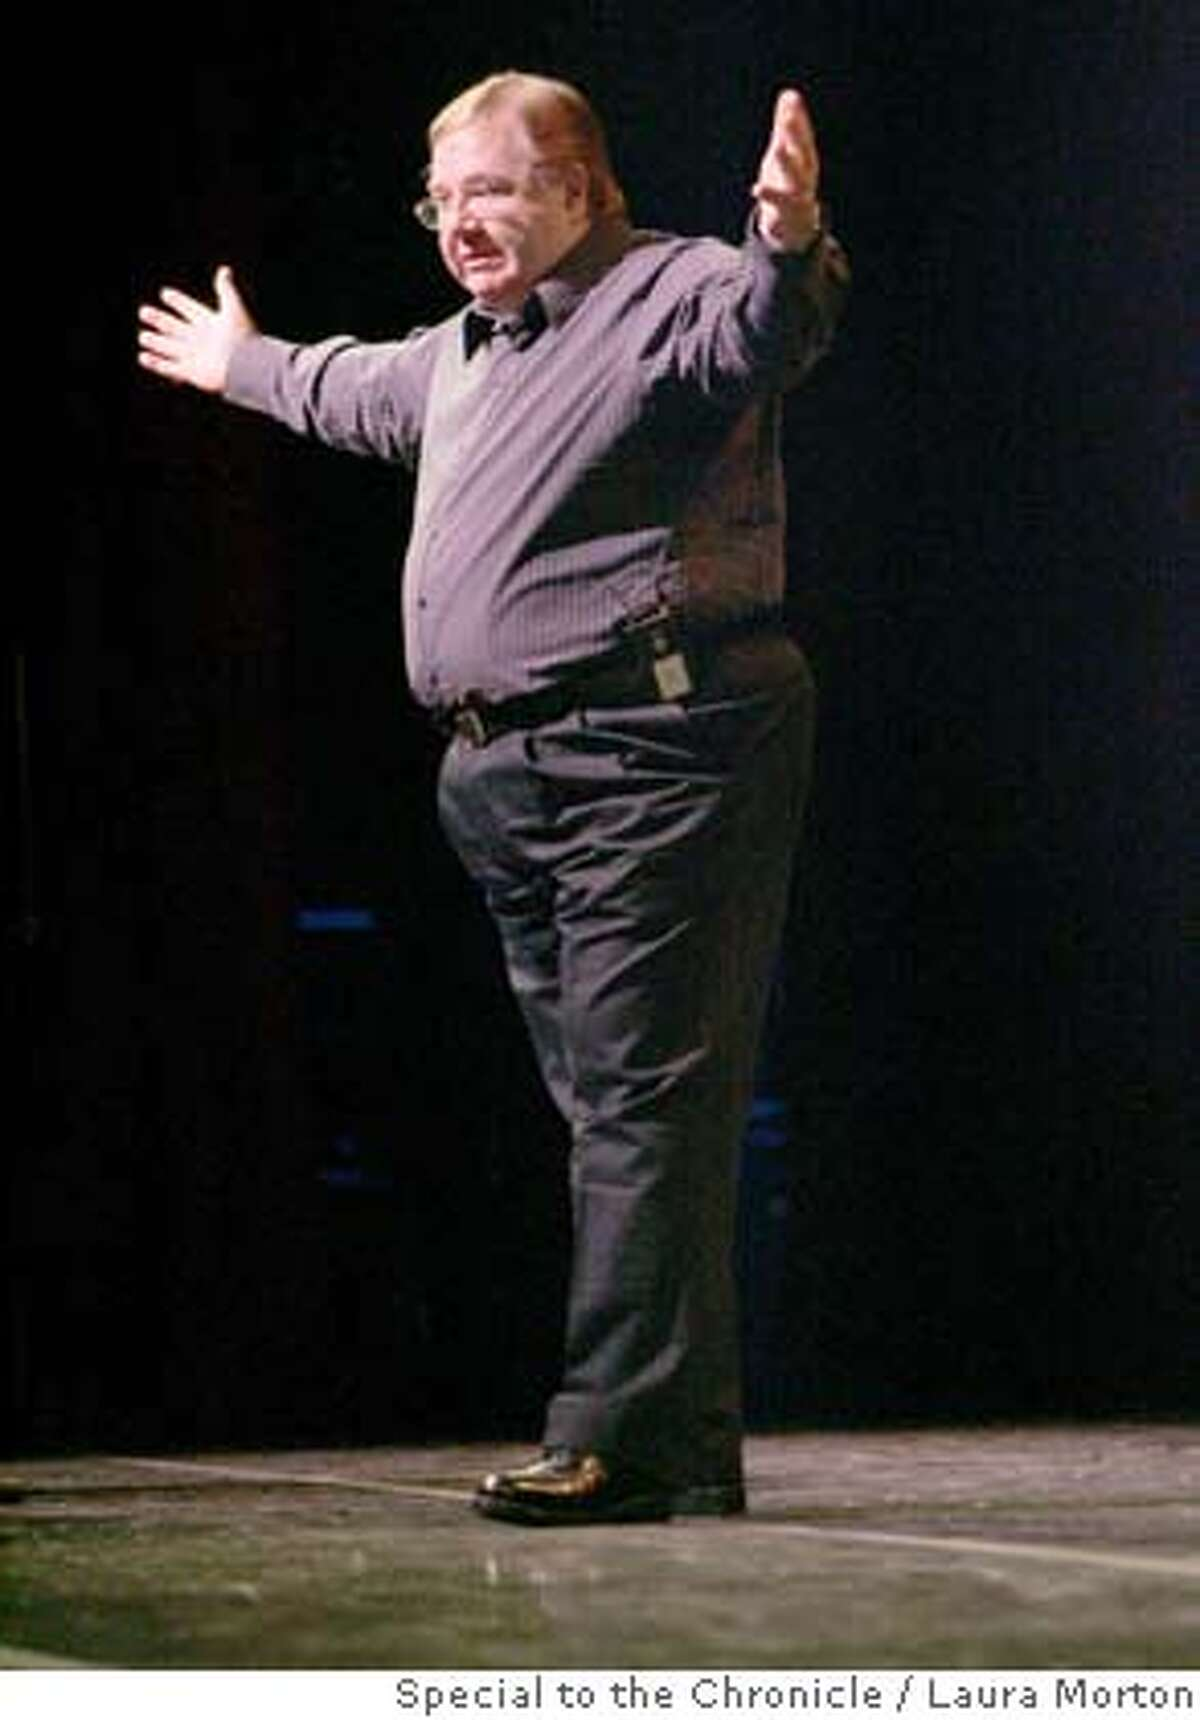 Spiritual medium Robert Brown speaks to the crowd at Proof of an Afterlife, a conference held at the Fort Mason Center in San Francisco. The conference focused on the afterlife sciences. (Laura Morton/Special to the Chronicle)